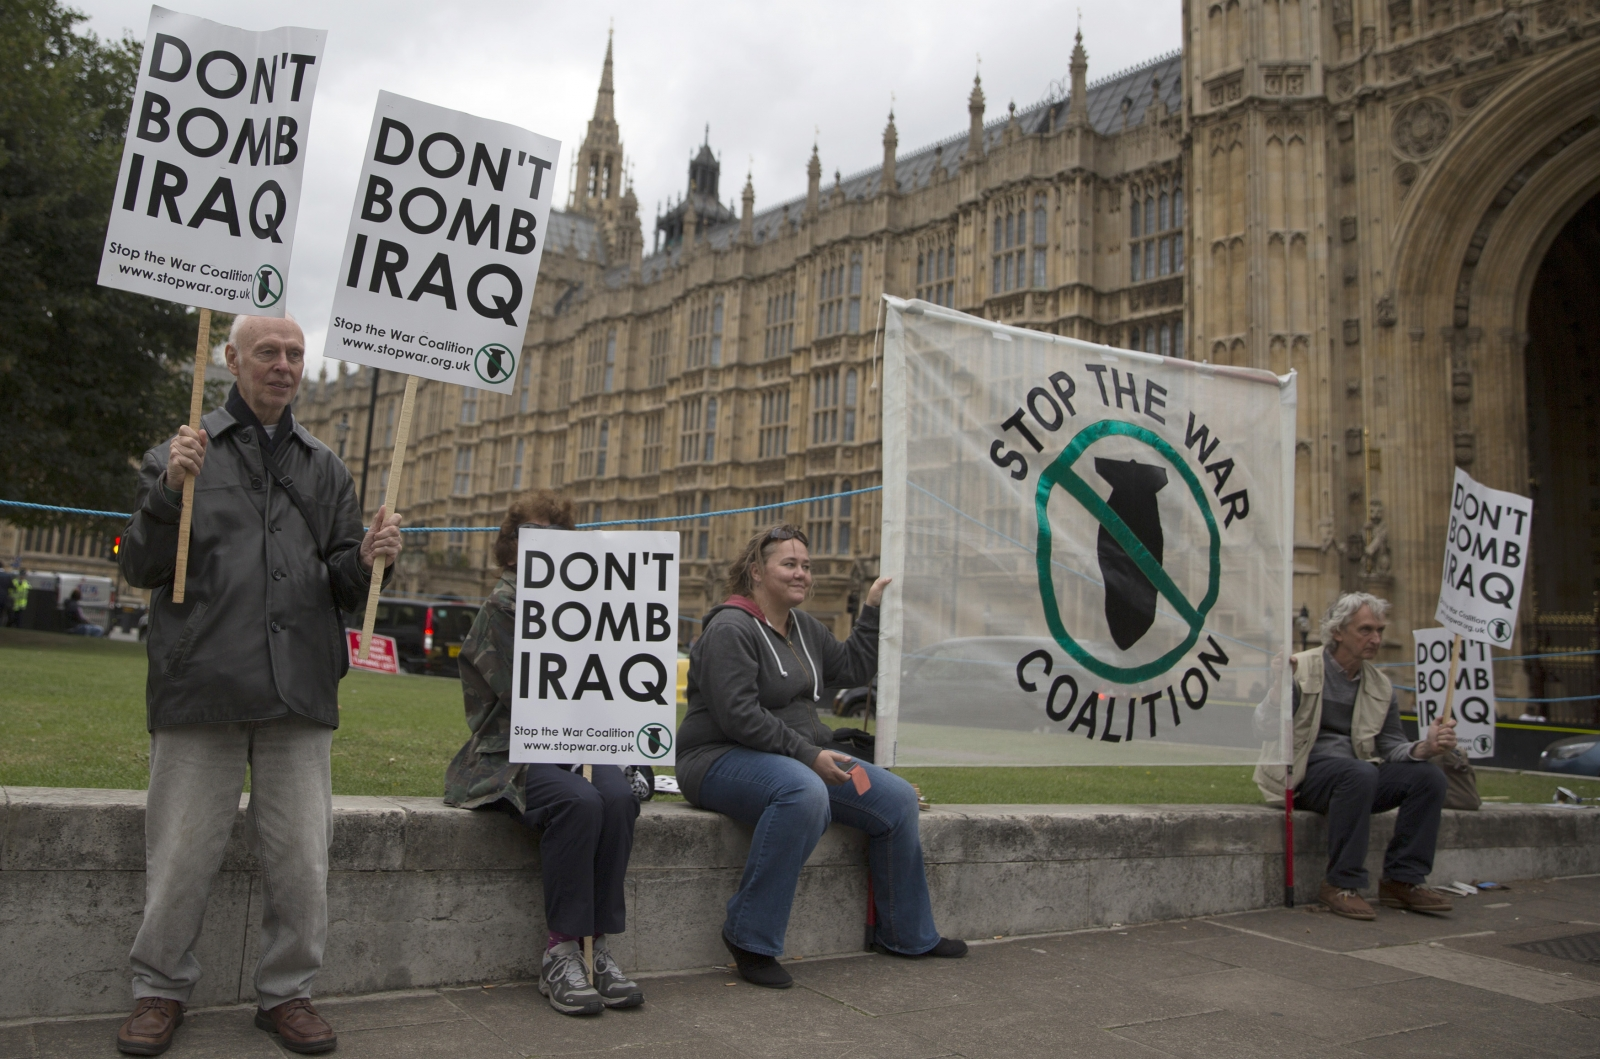 Demonstrators outside of the Houses Parliament protest against British military strikes in Iraq